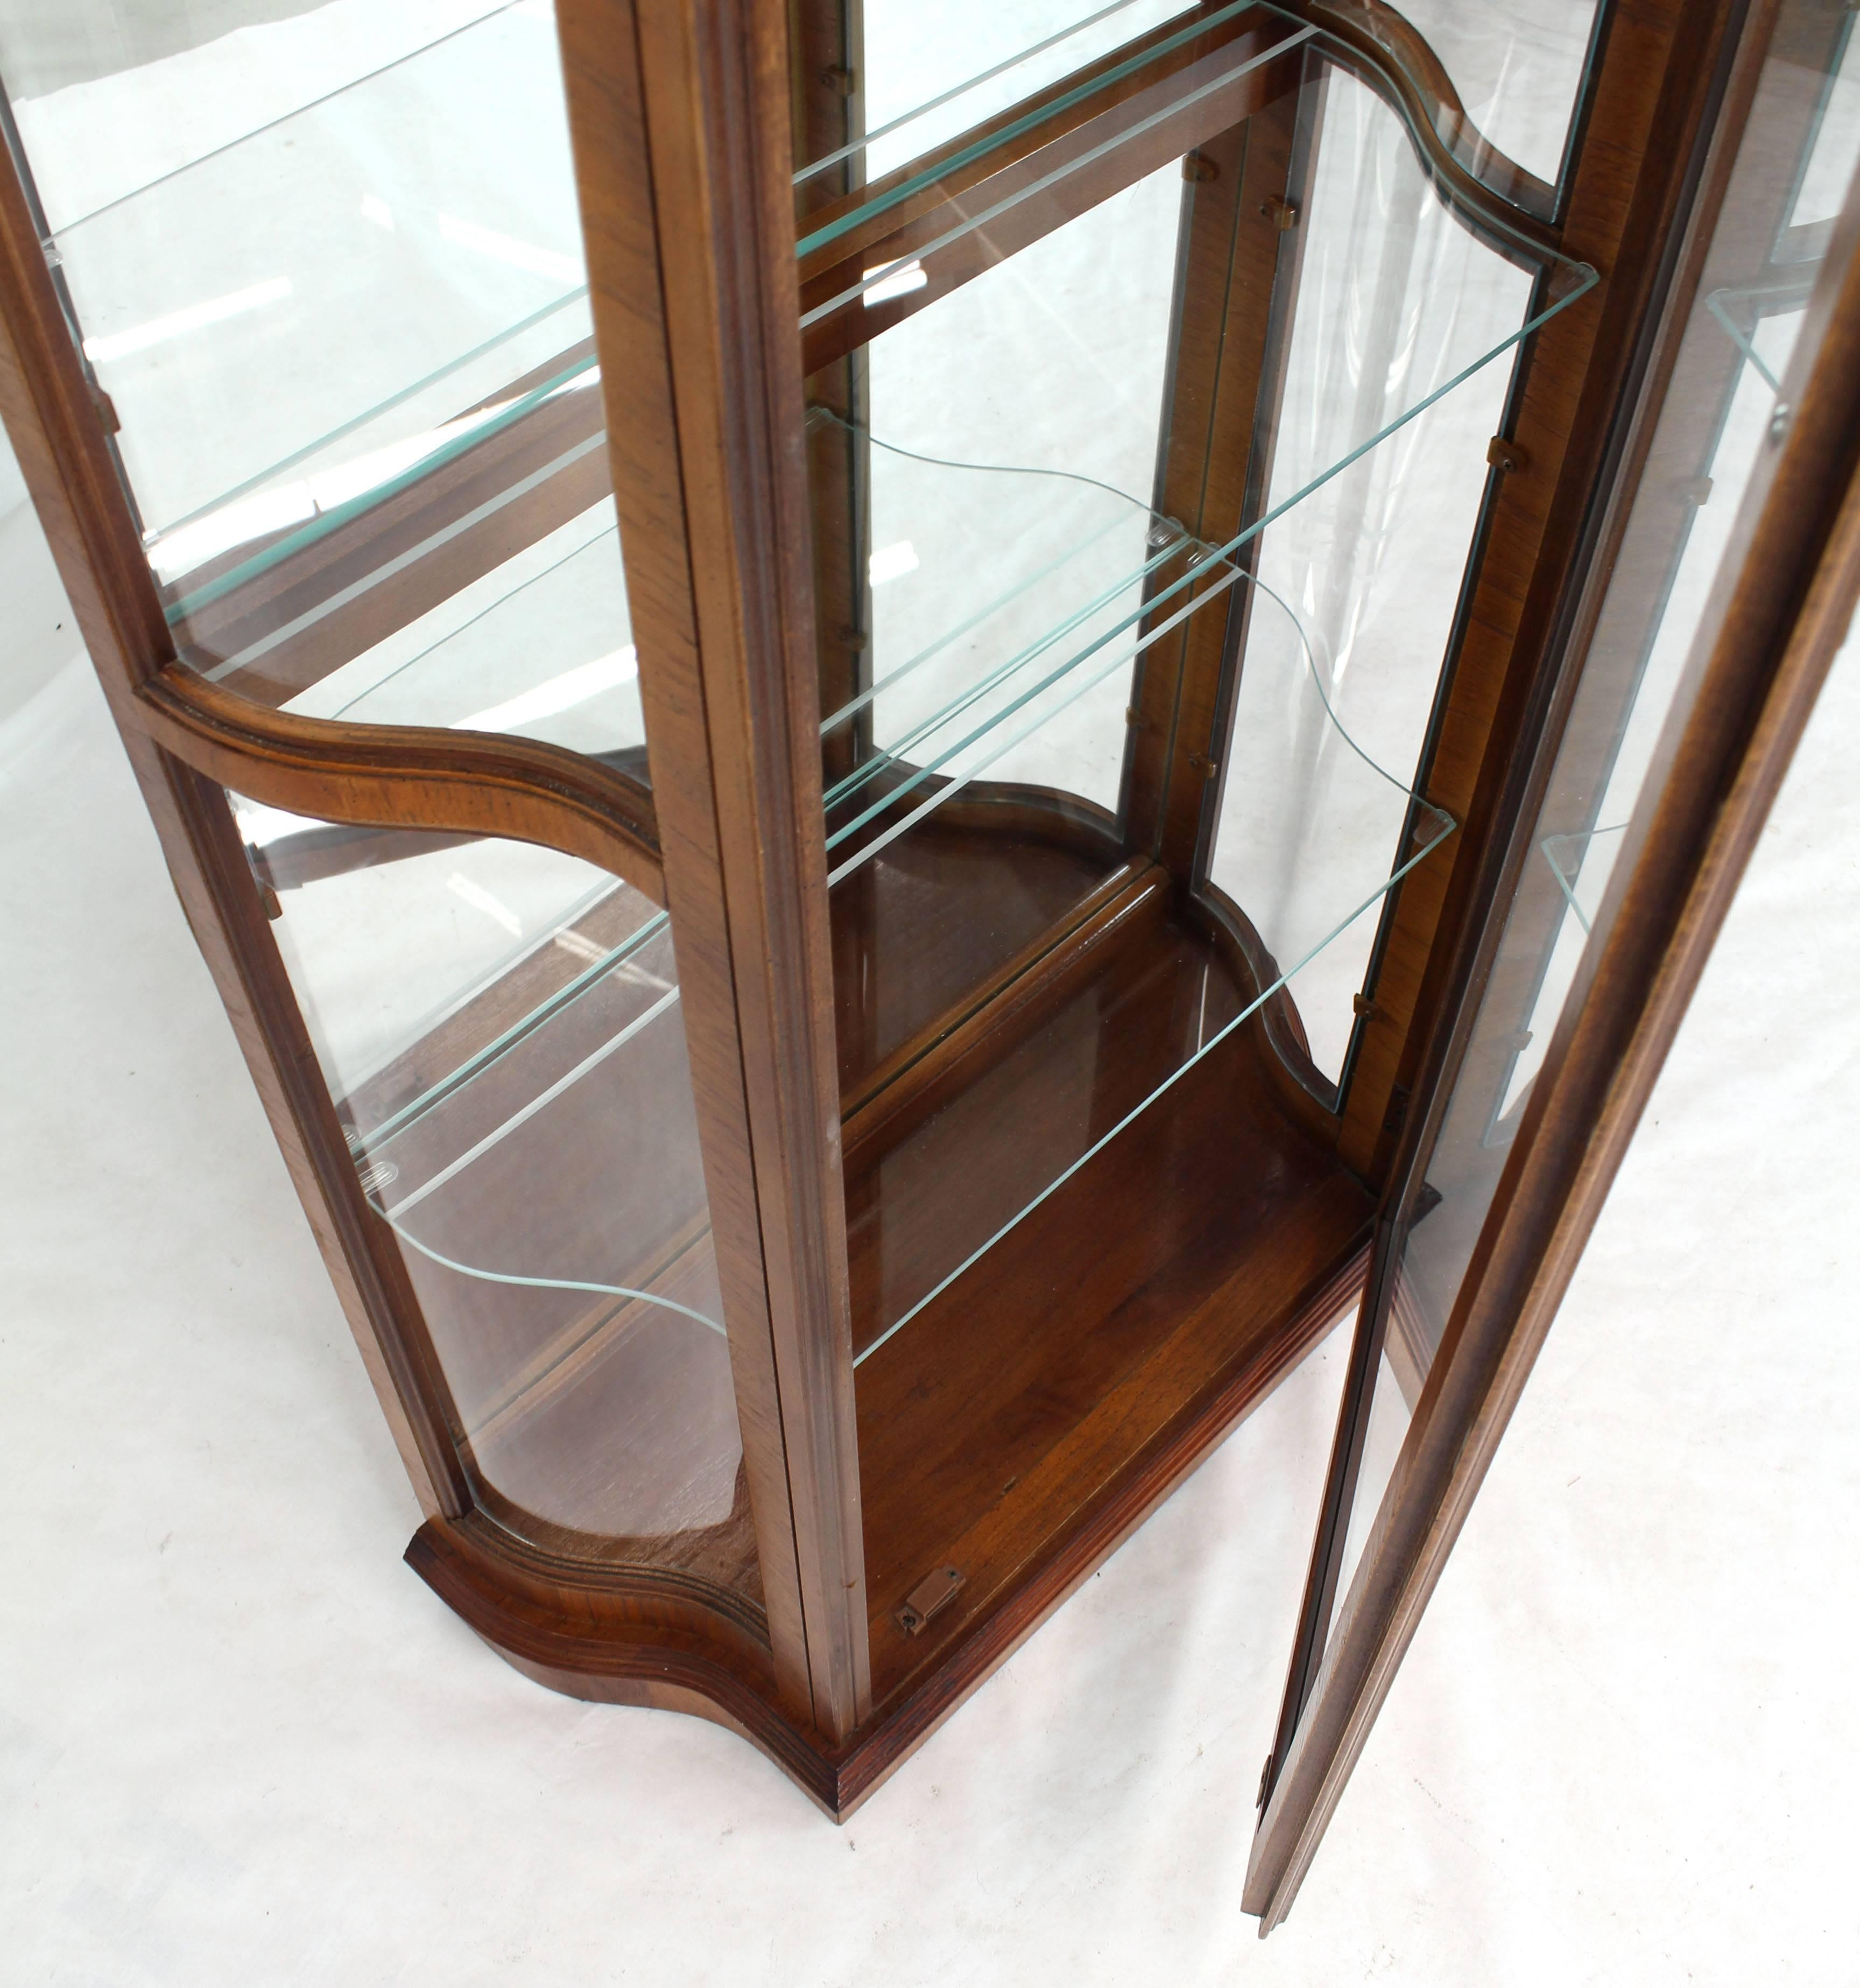 Neoclassical Tall Narrow Walnut And Mahogany Curved Glass Curio Cabinet For  Sale